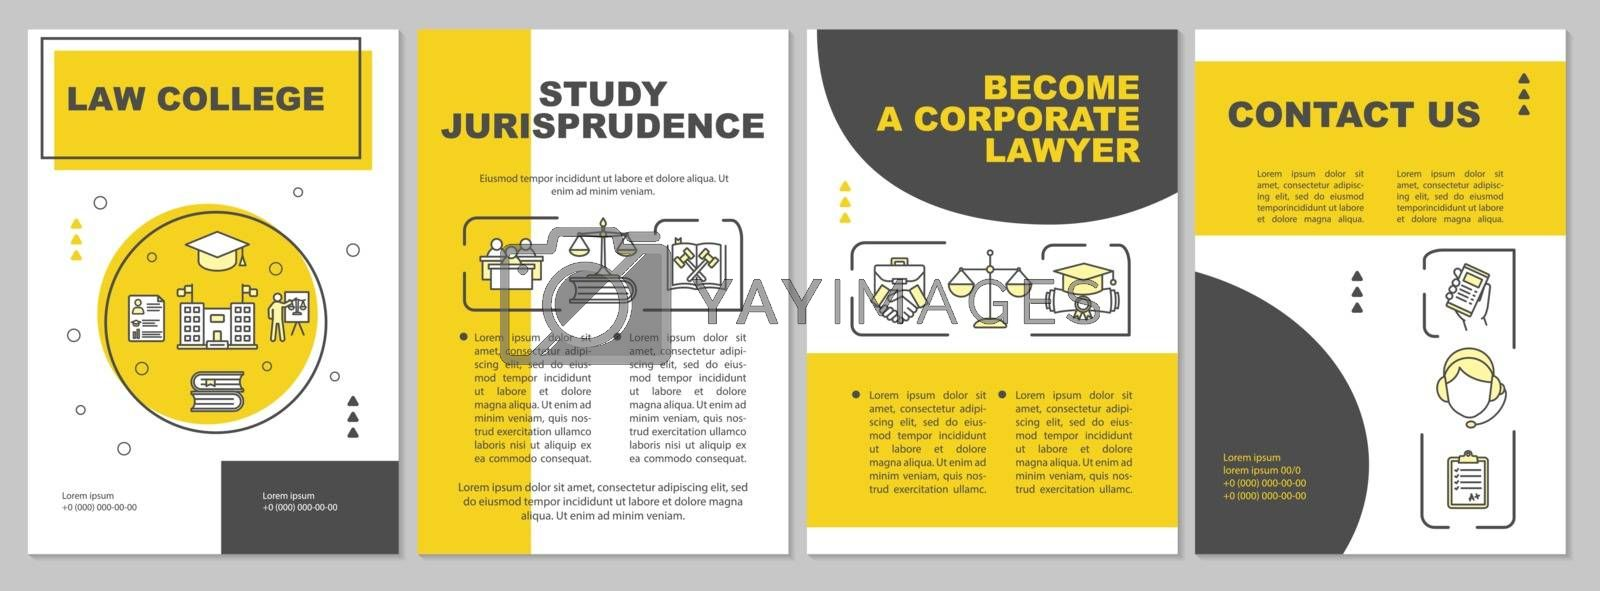 Law school brochure template. Studying jurisprudence. Flyer, booklet, leaflet print, cover design with linear icons. Vector layouts for magazines, annual reports, advertising posters